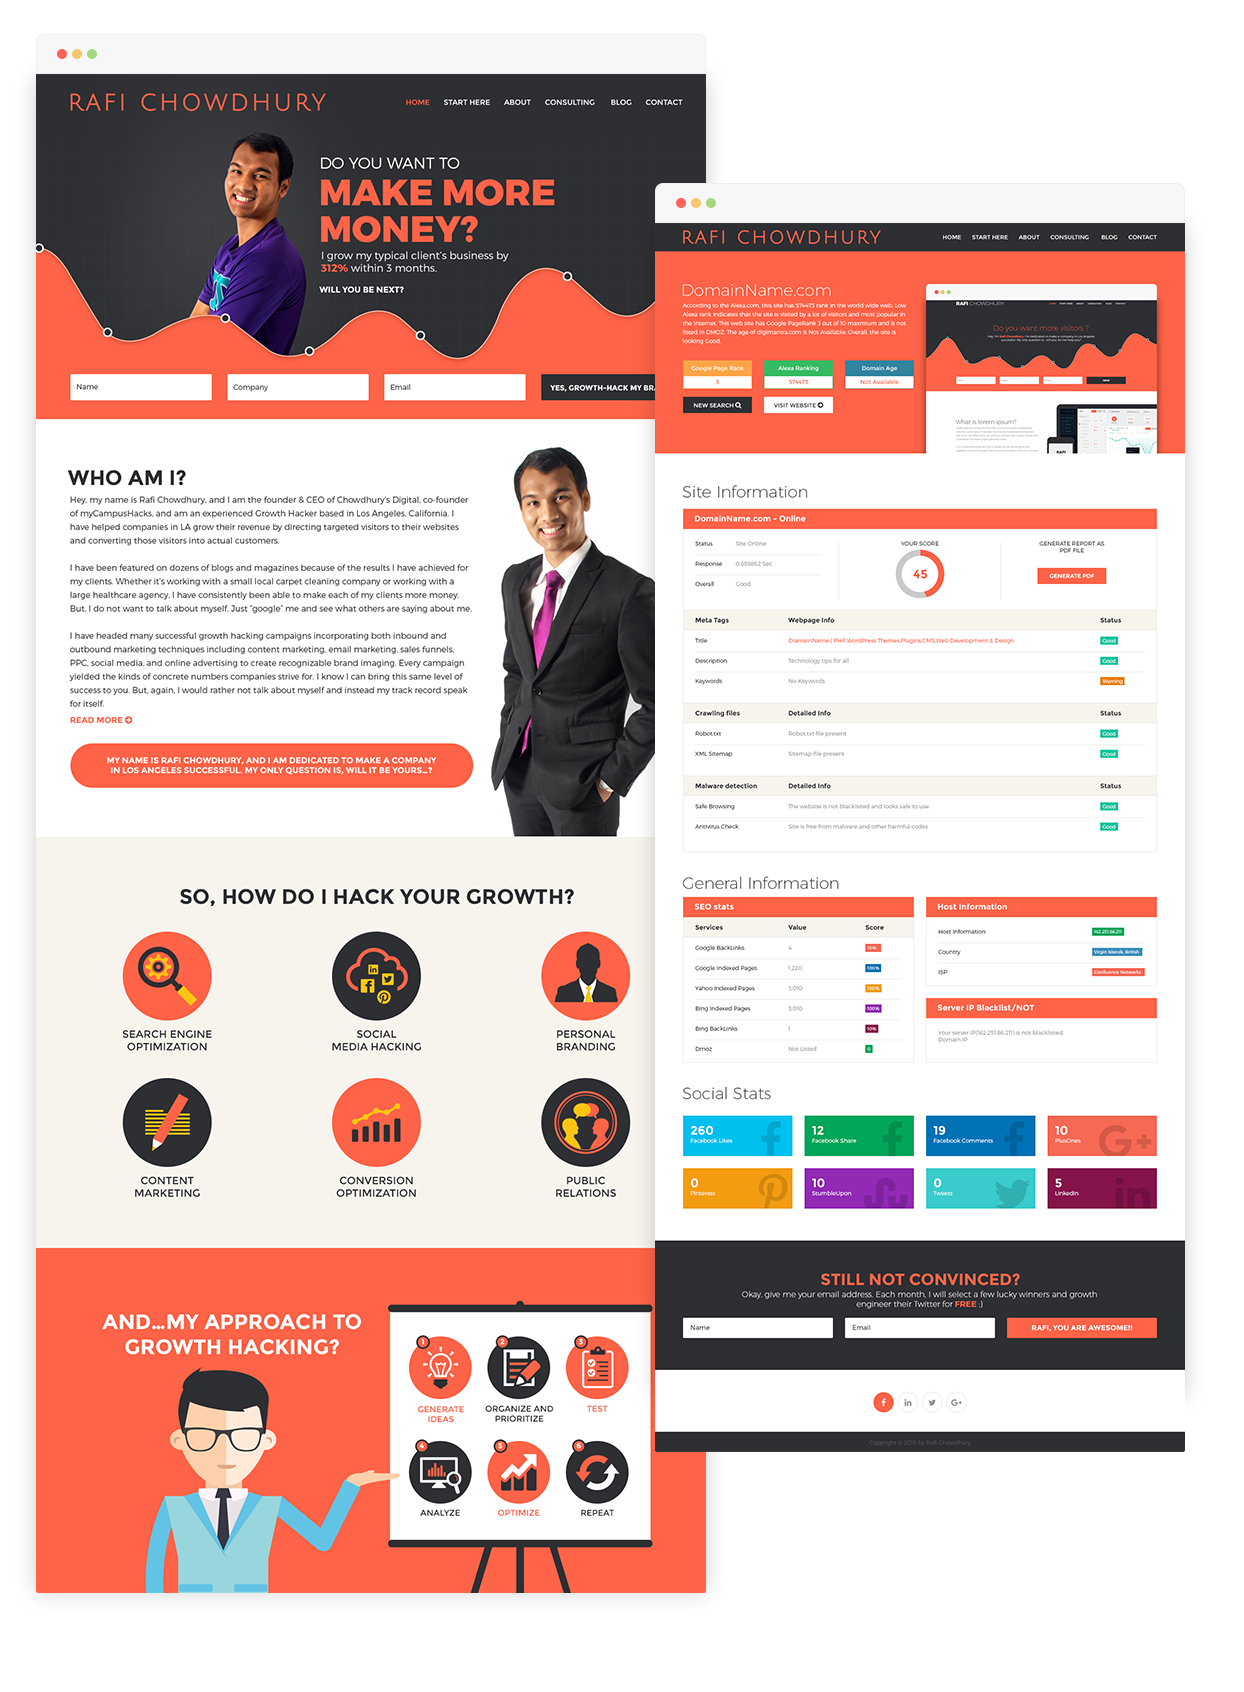 Website Designed and Developed by Digimantra Labs